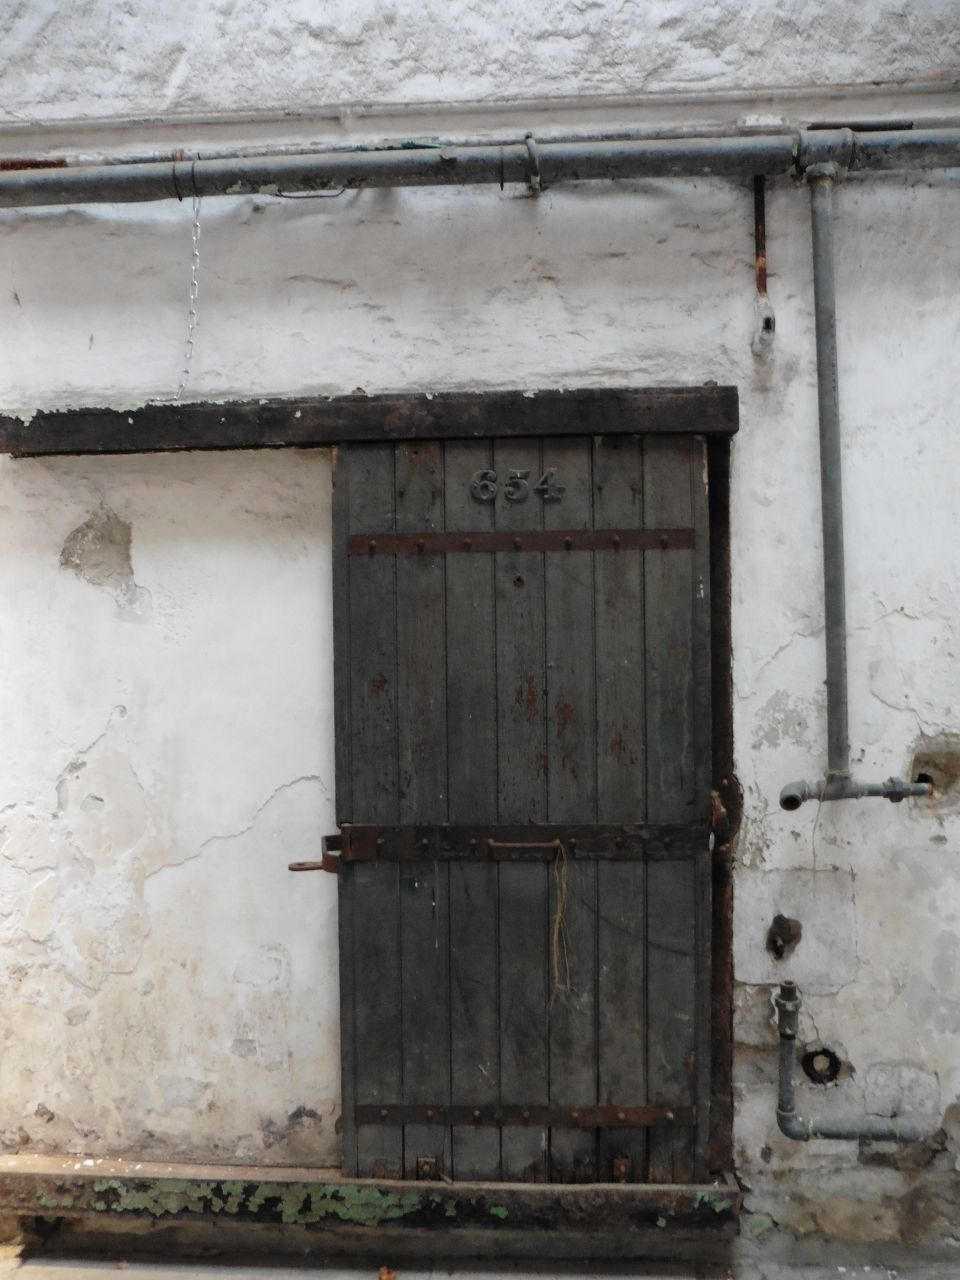 door to an inmate's cell